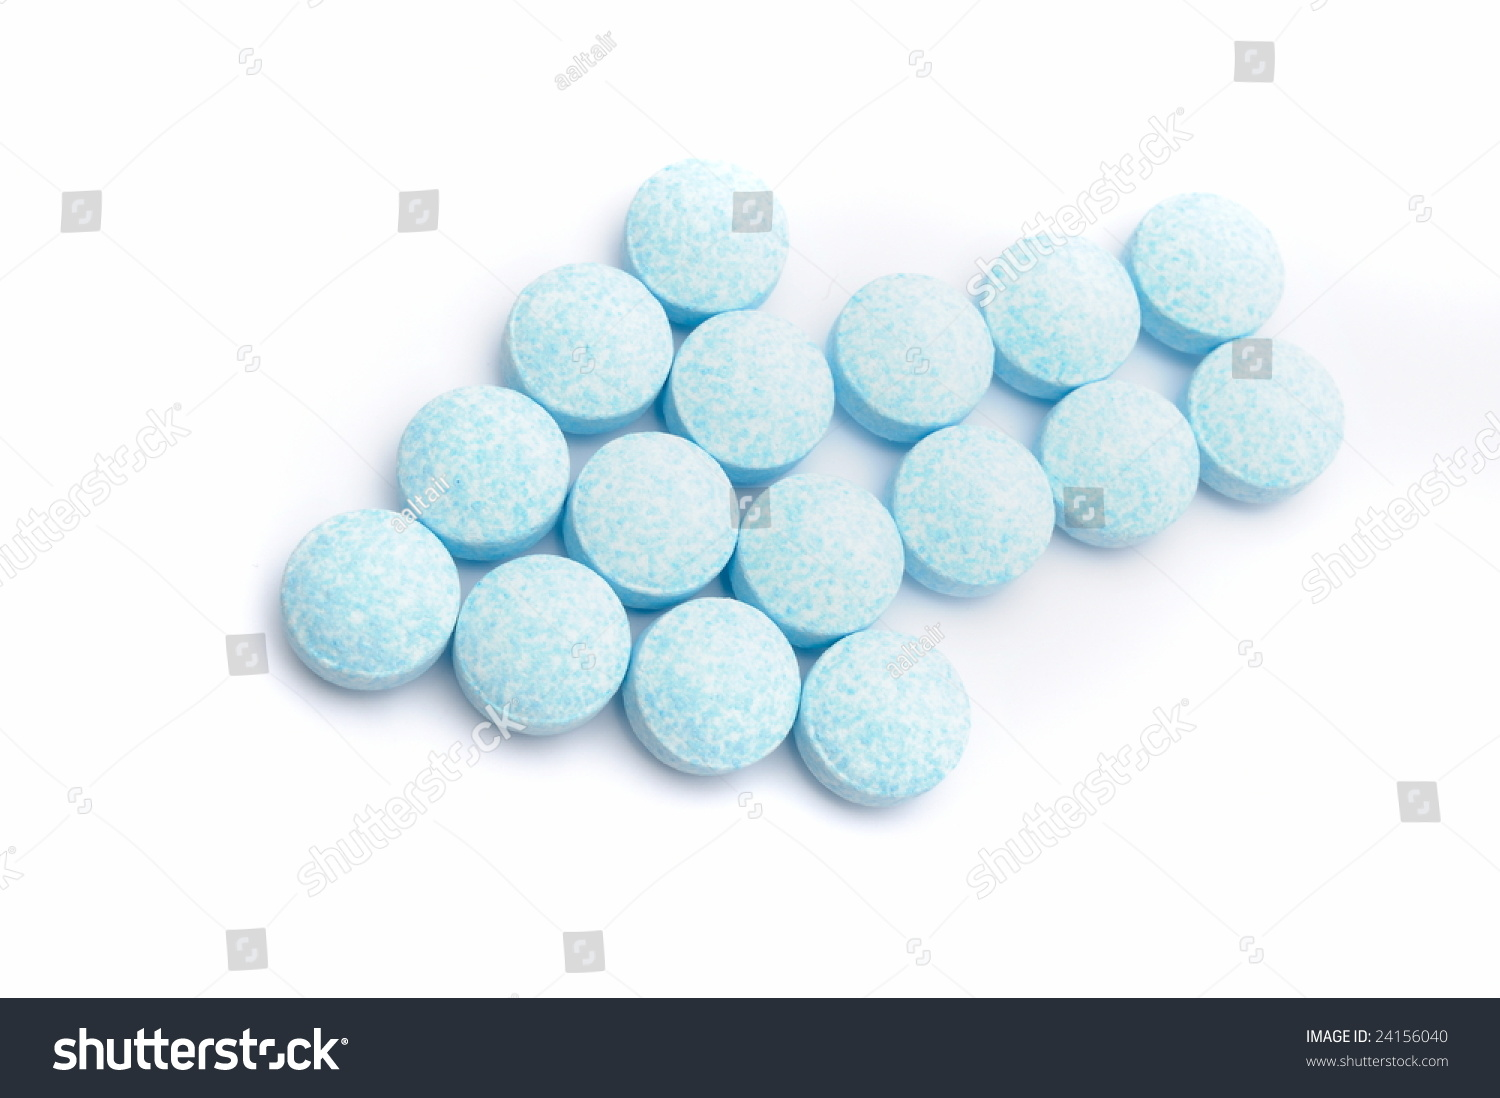 blue pills against white background stock photo 24156040